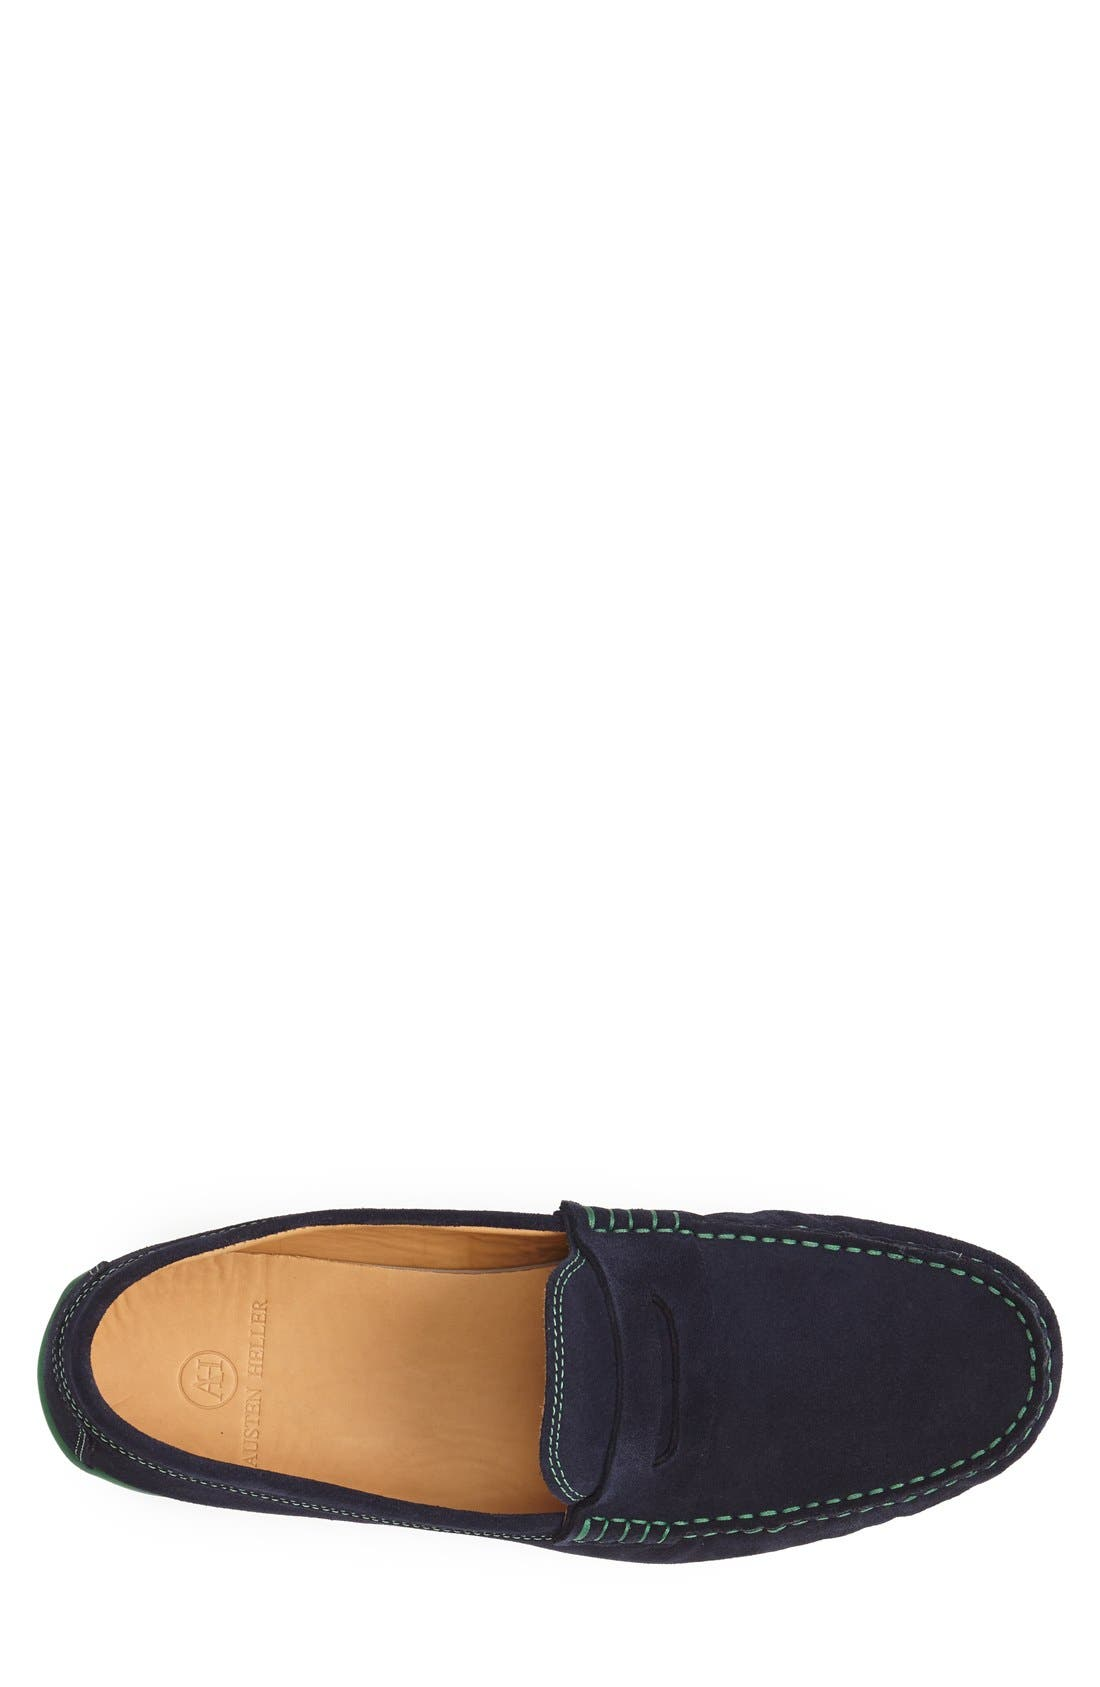 'Chathams' Penny Loafer,                             Alternate thumbnail 7, color,                             NAVY SUEDE/ GREEN